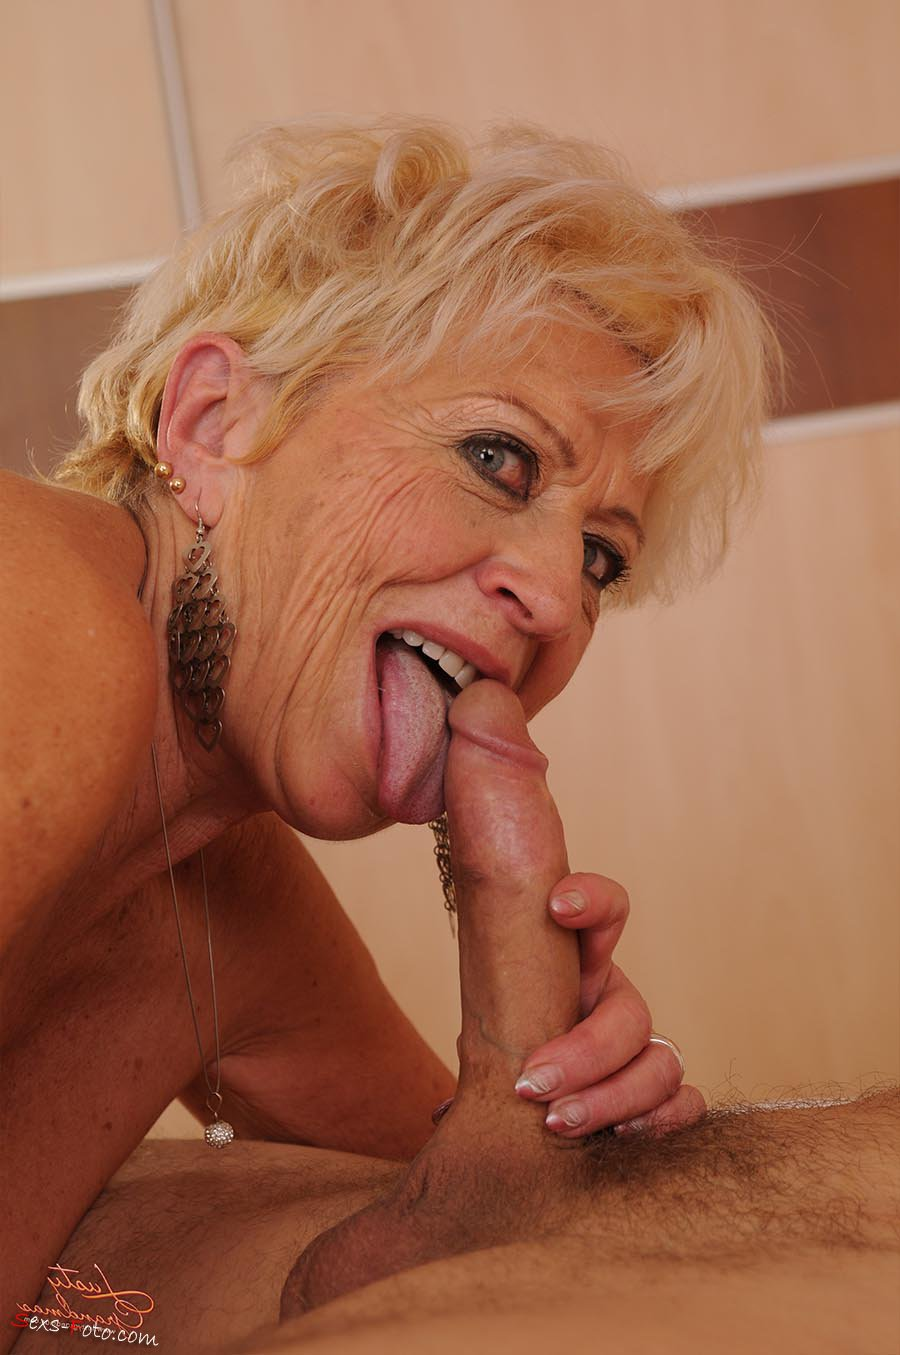 Blonde 50 year old sucks cock eagerly